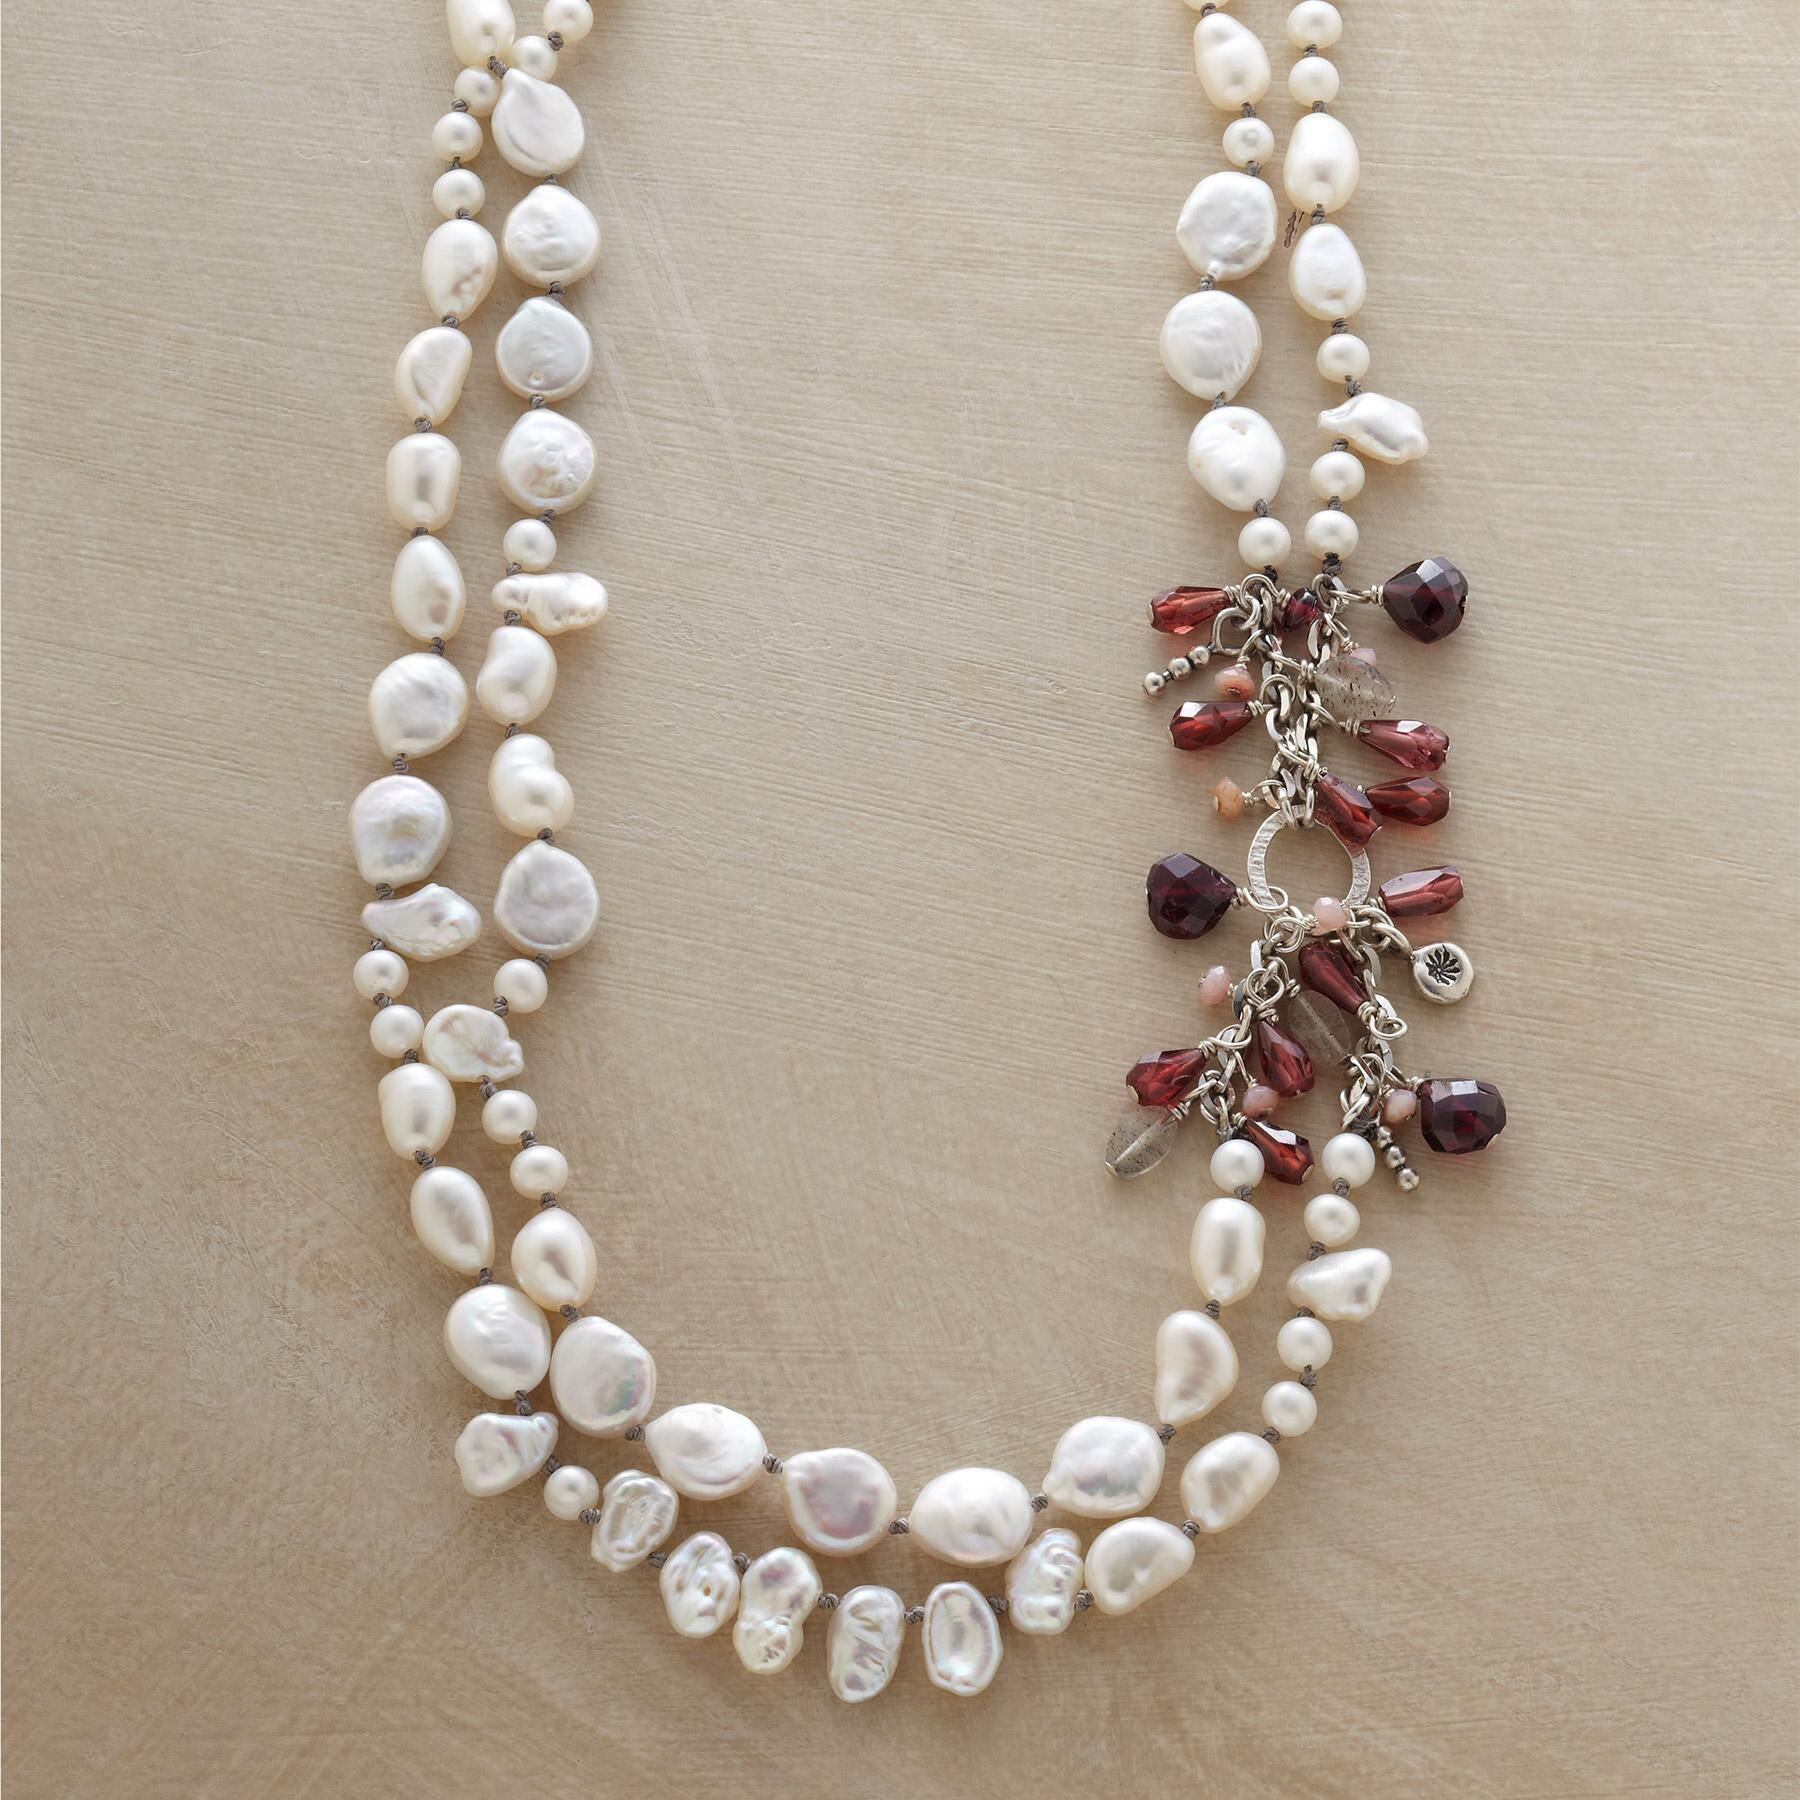 27eb3c80aee9d Double Strand Pearl Necklace | Robert Redford's Sundance Catalog